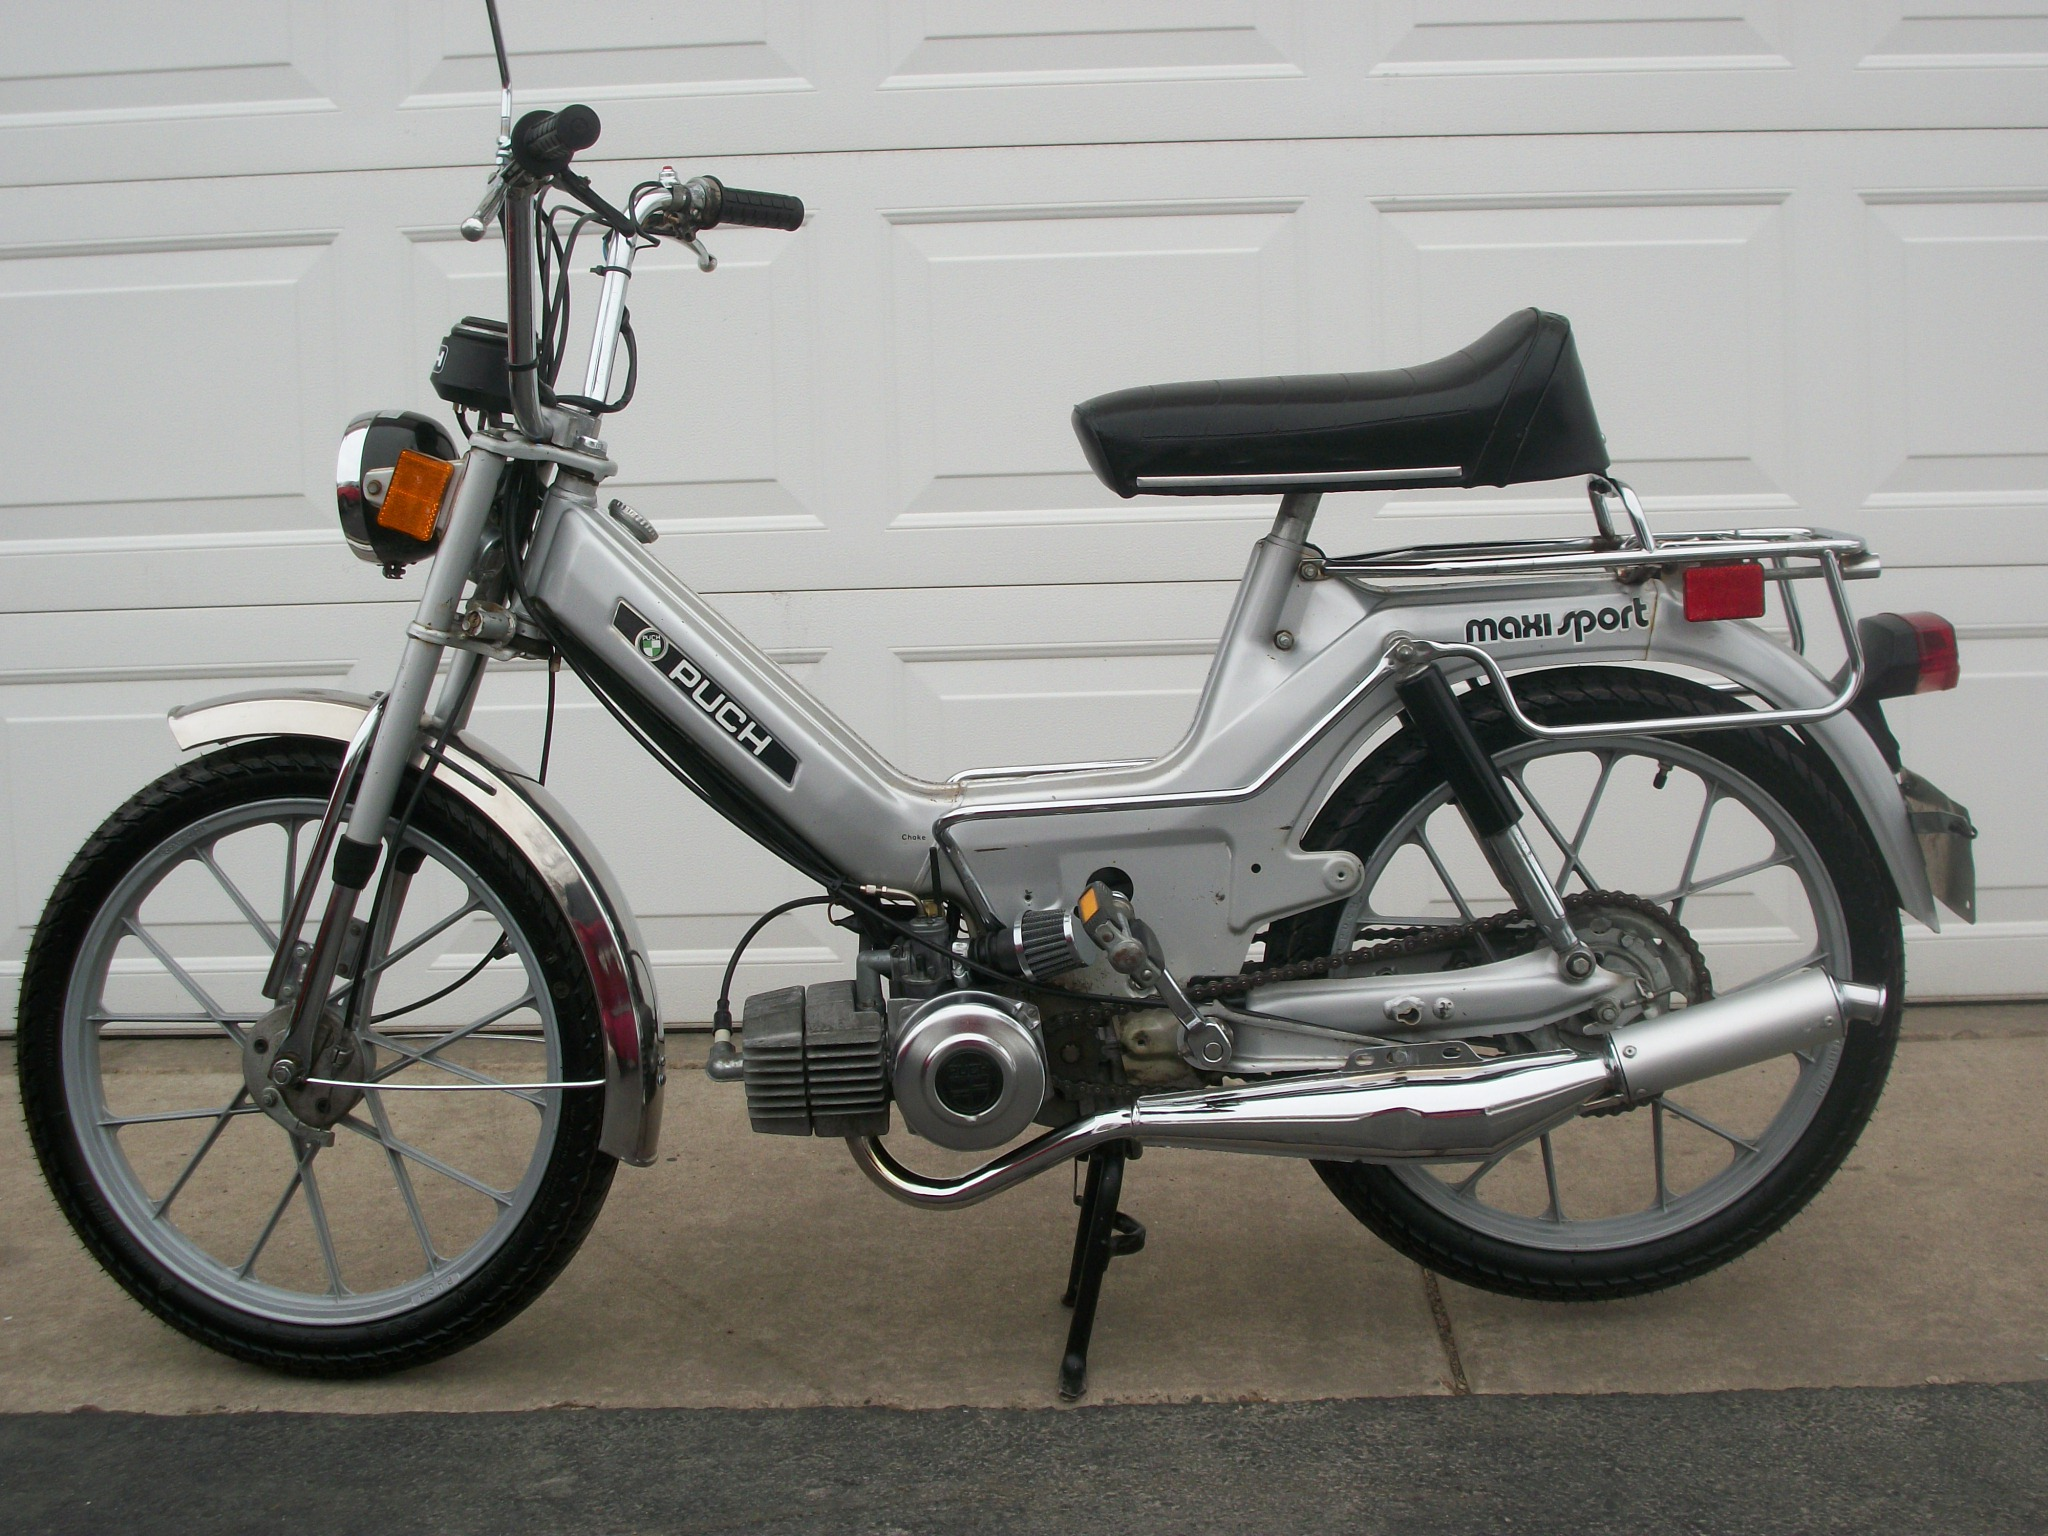 Used or Reconditioned* 1977 Puch Maxi Sport (Sold) | Sunday Morning